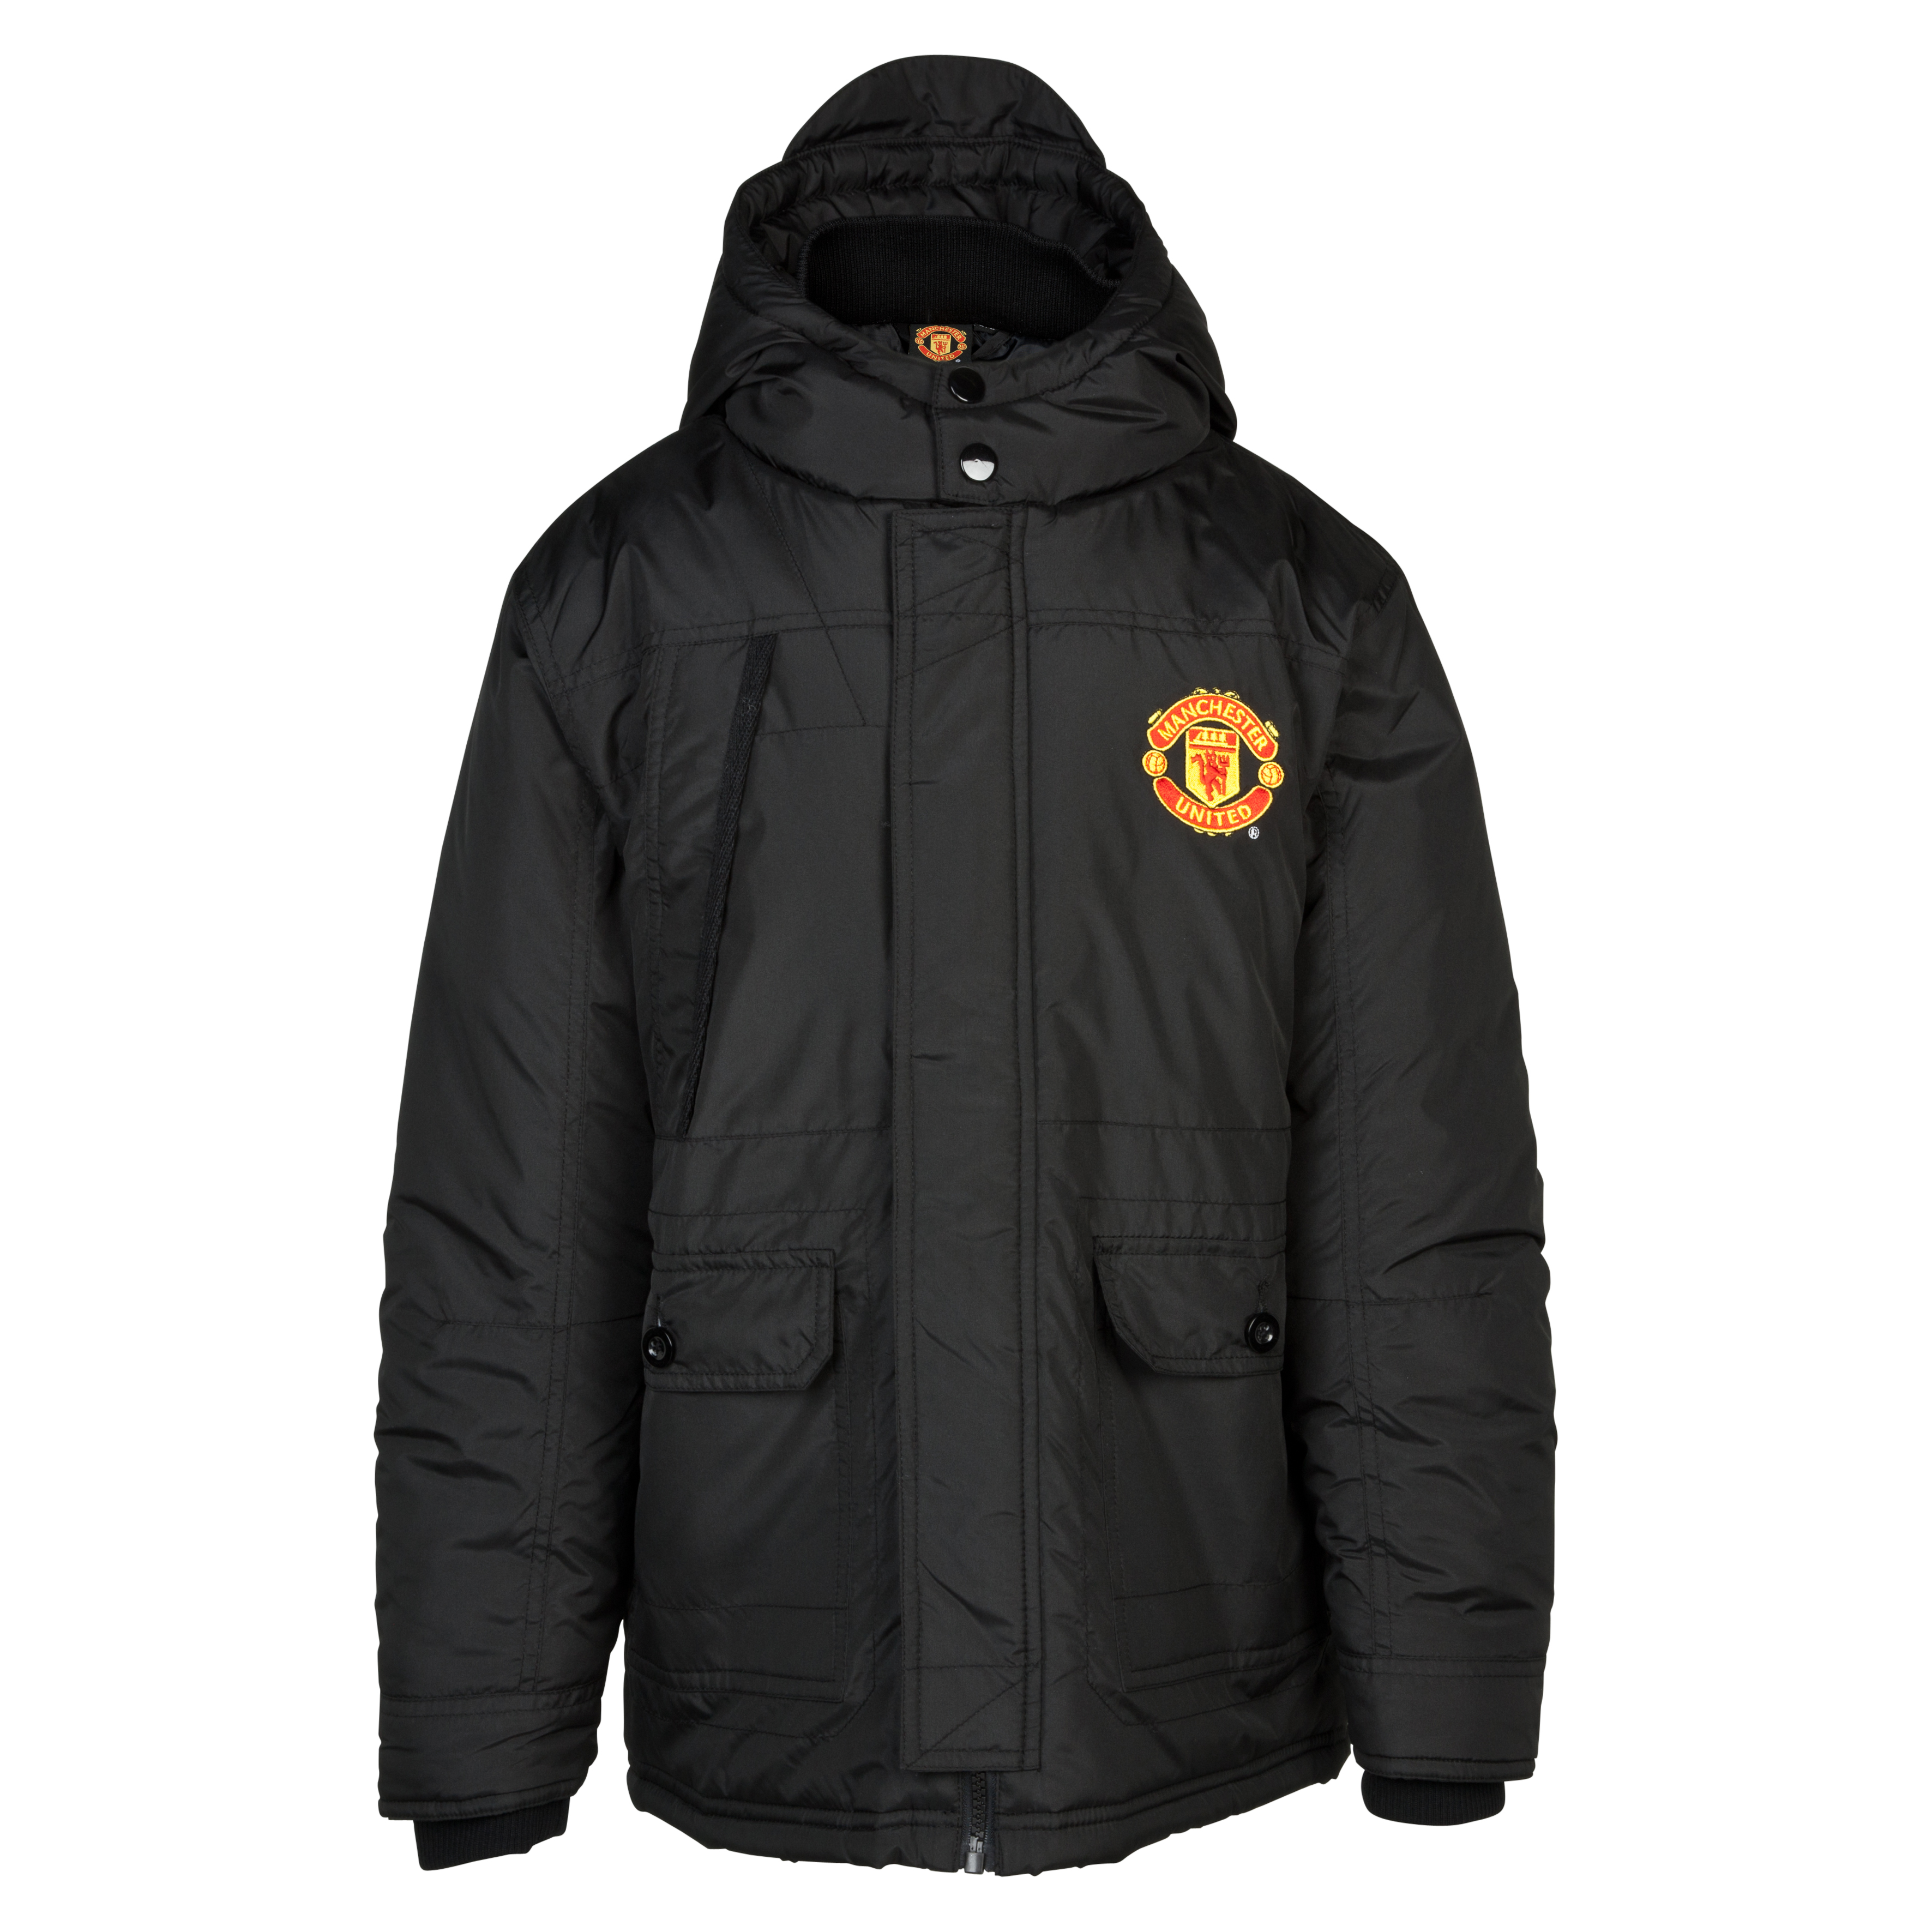 Manchester United Padded Jacket - Older Boys